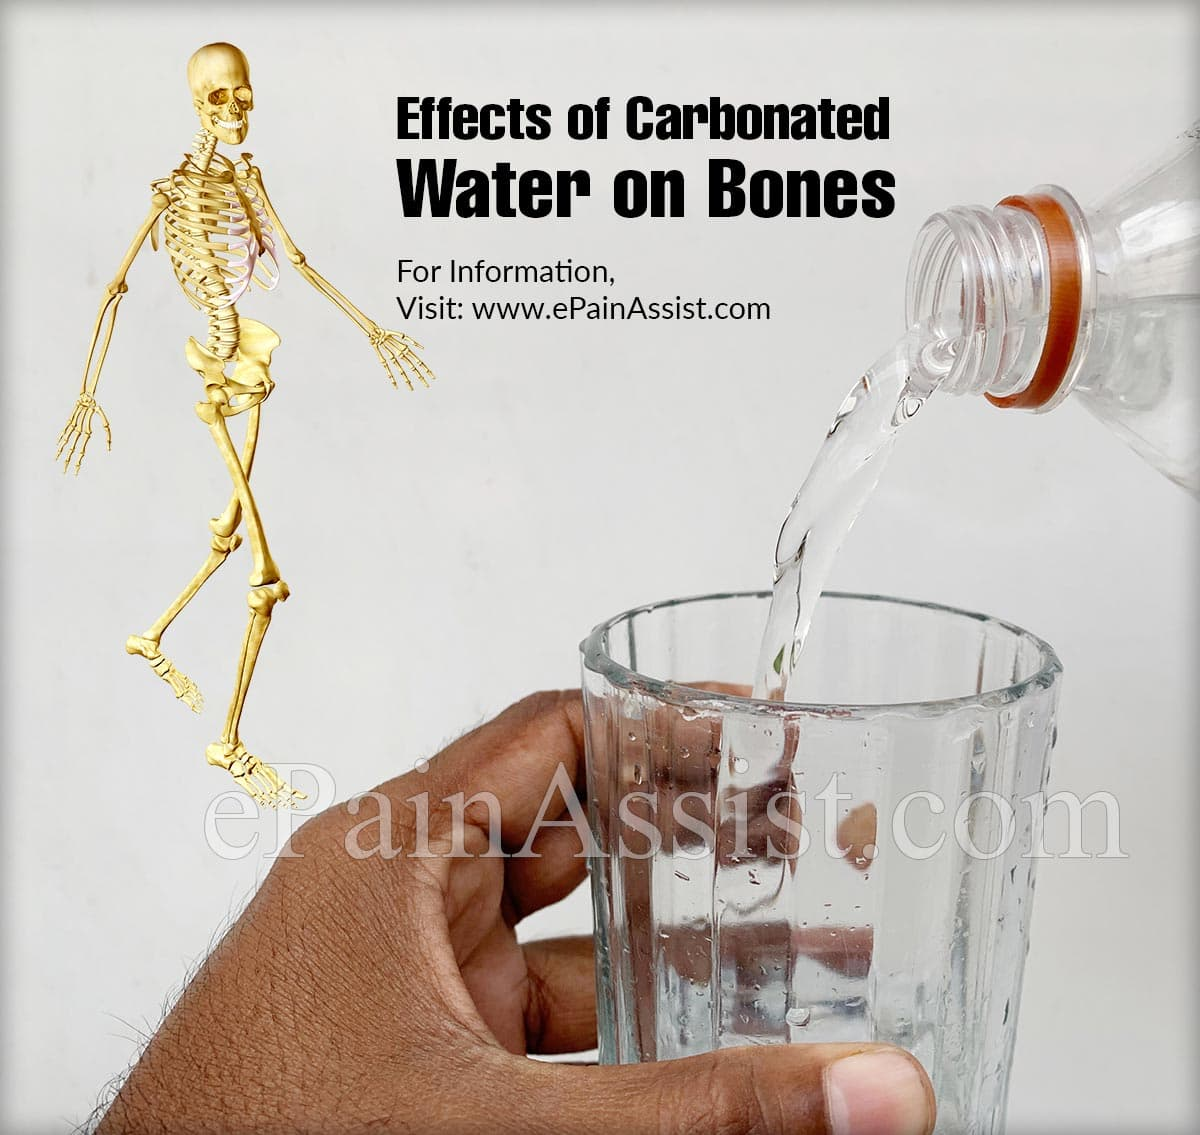 Effects of Carbonated Water on Bones